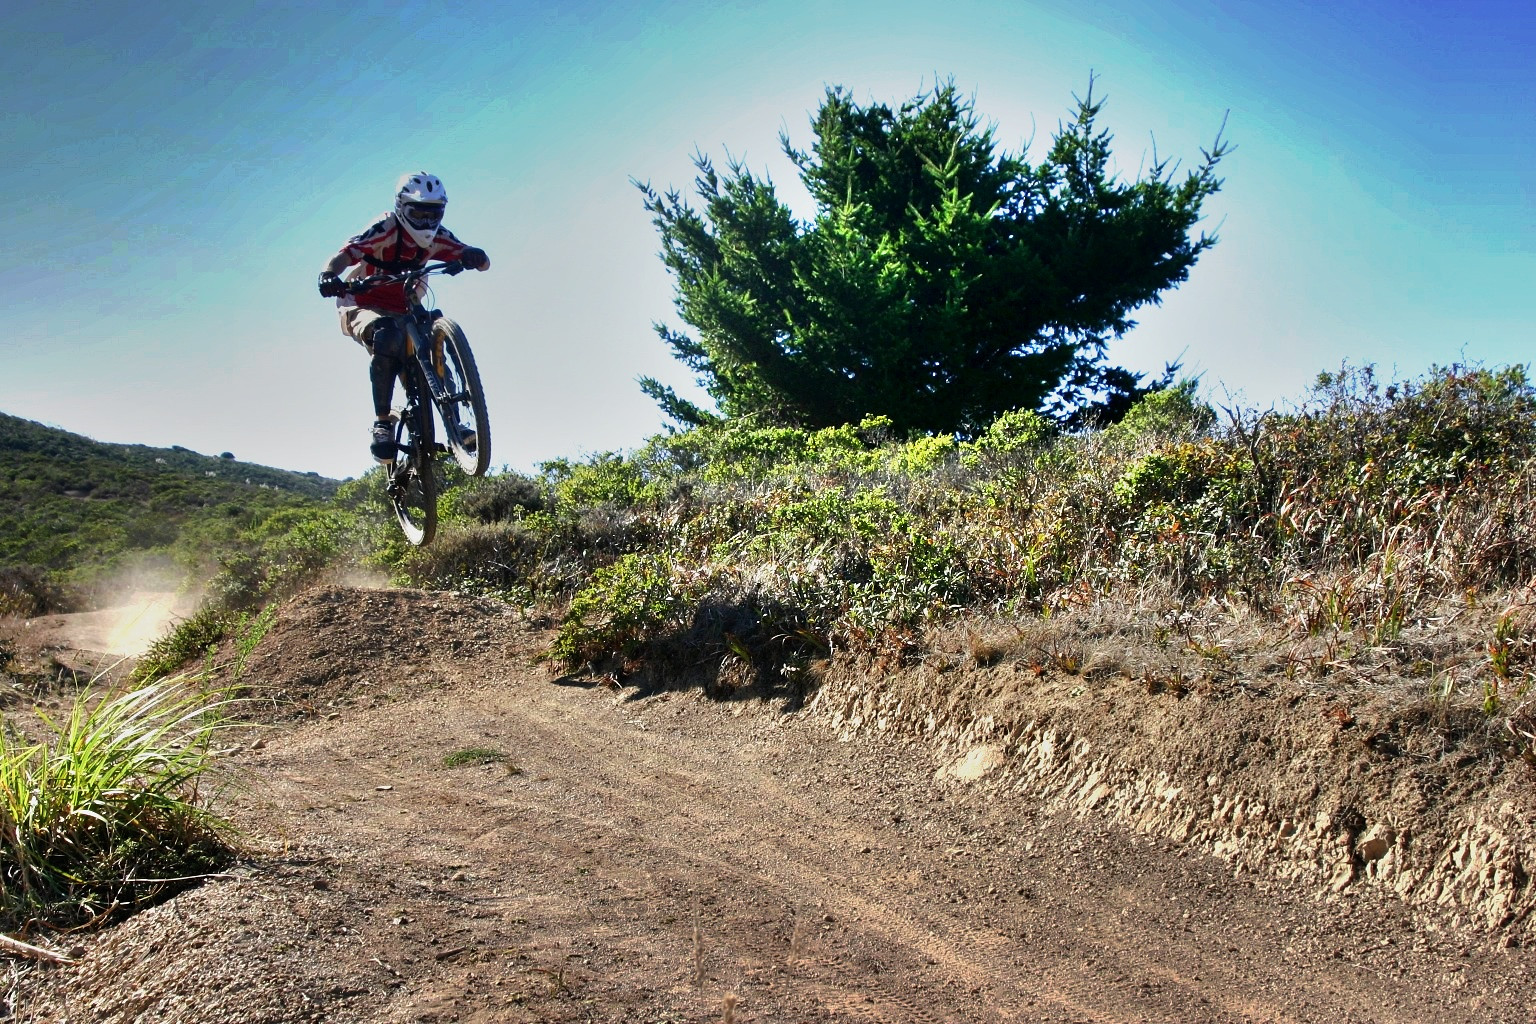 Mile 2nd Jump HDR - reese.stanley.71 - Mountain Biking Pictures - Vital MTB